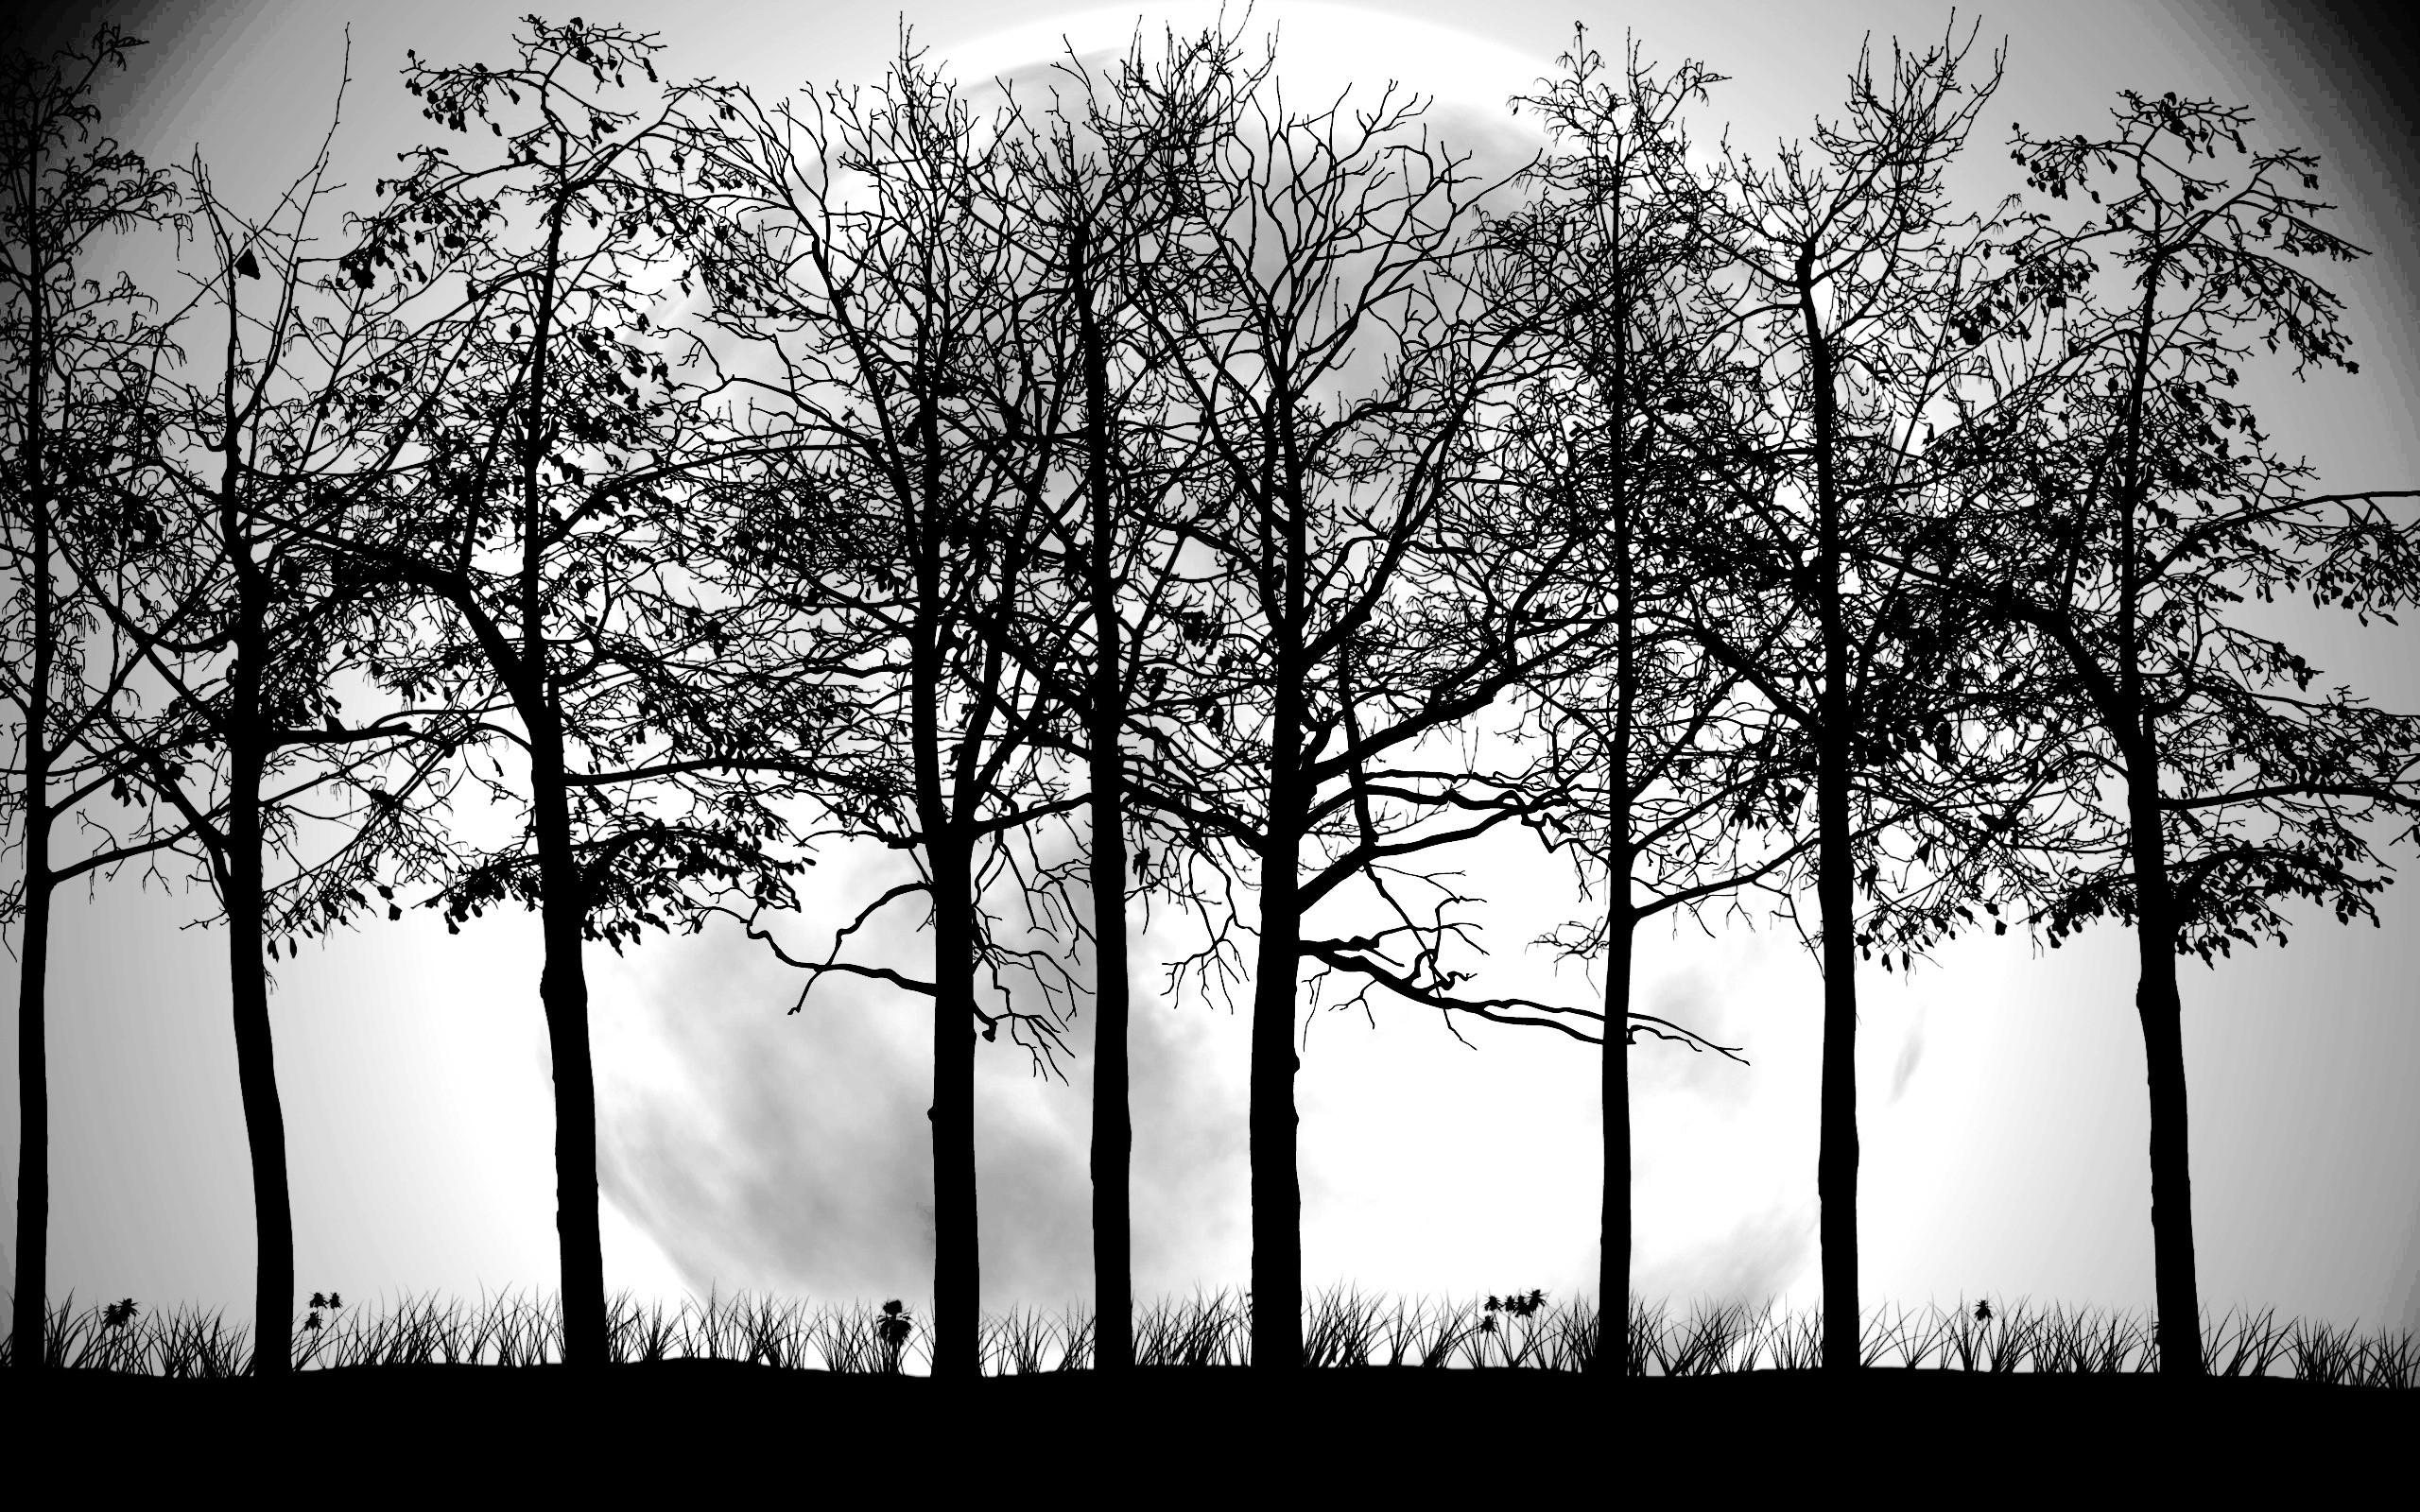 Tree Black and White Wallpapers.